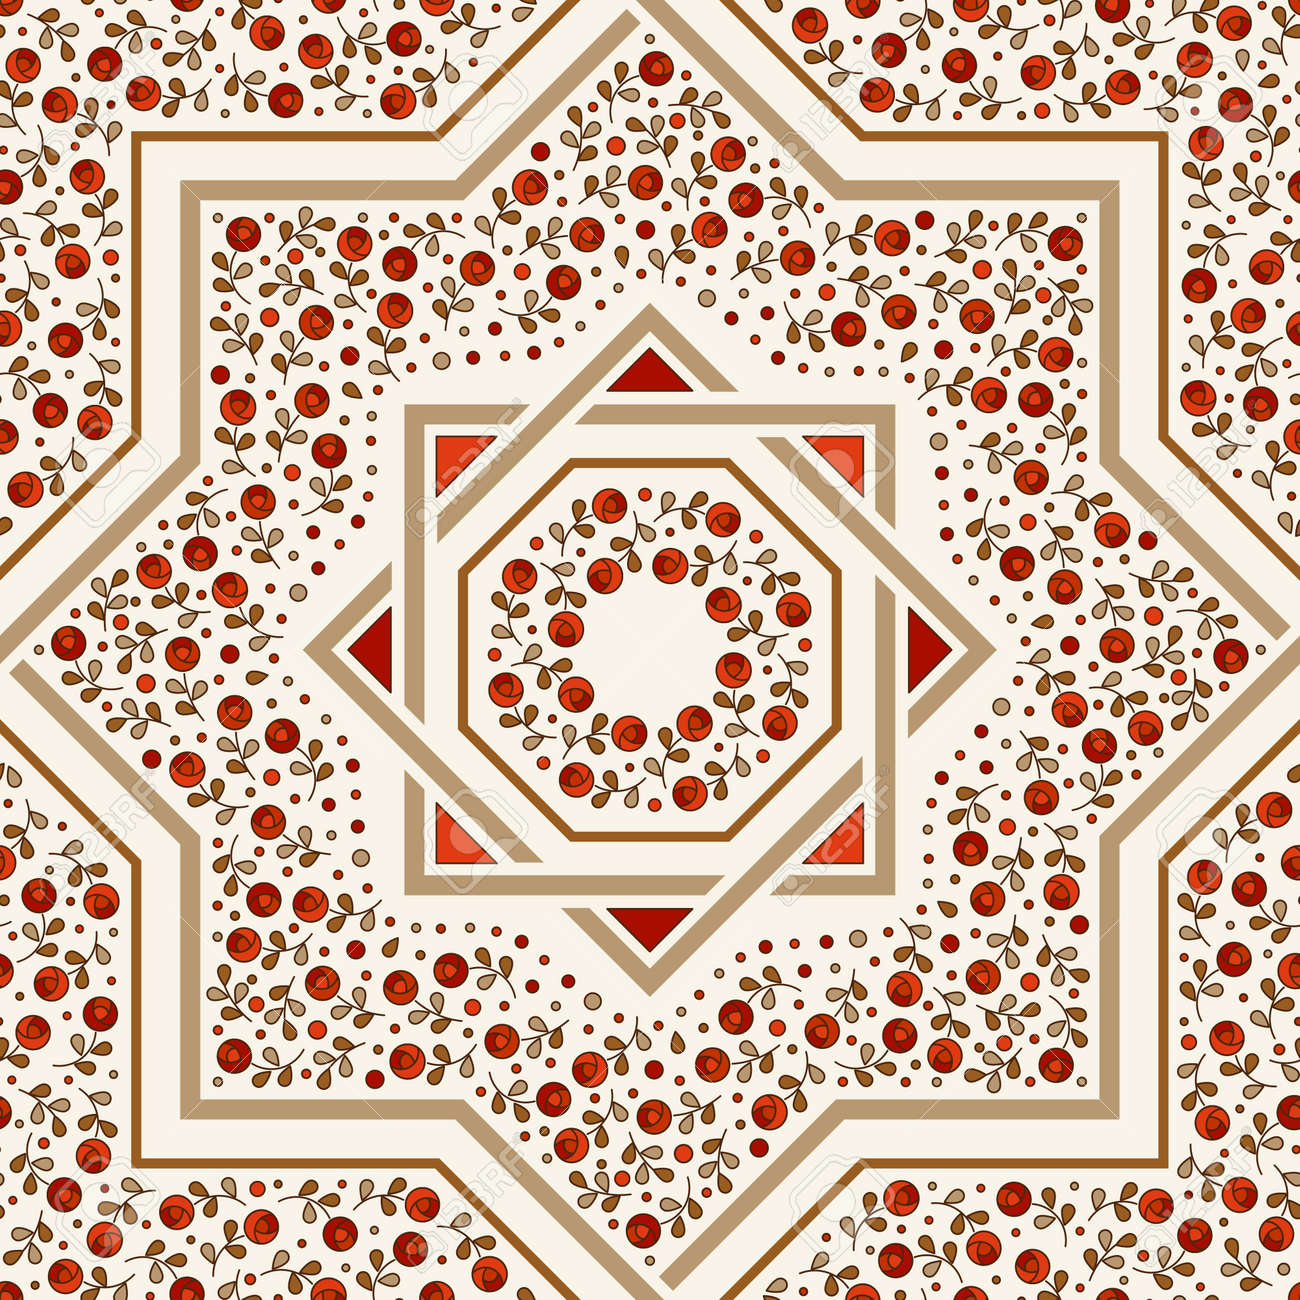 Patterned floor tile moroccan pattern design eight ray star patterned floor tile moroccan pattern design eight ray star seamless vector pattern dailygadgetfo Gallery